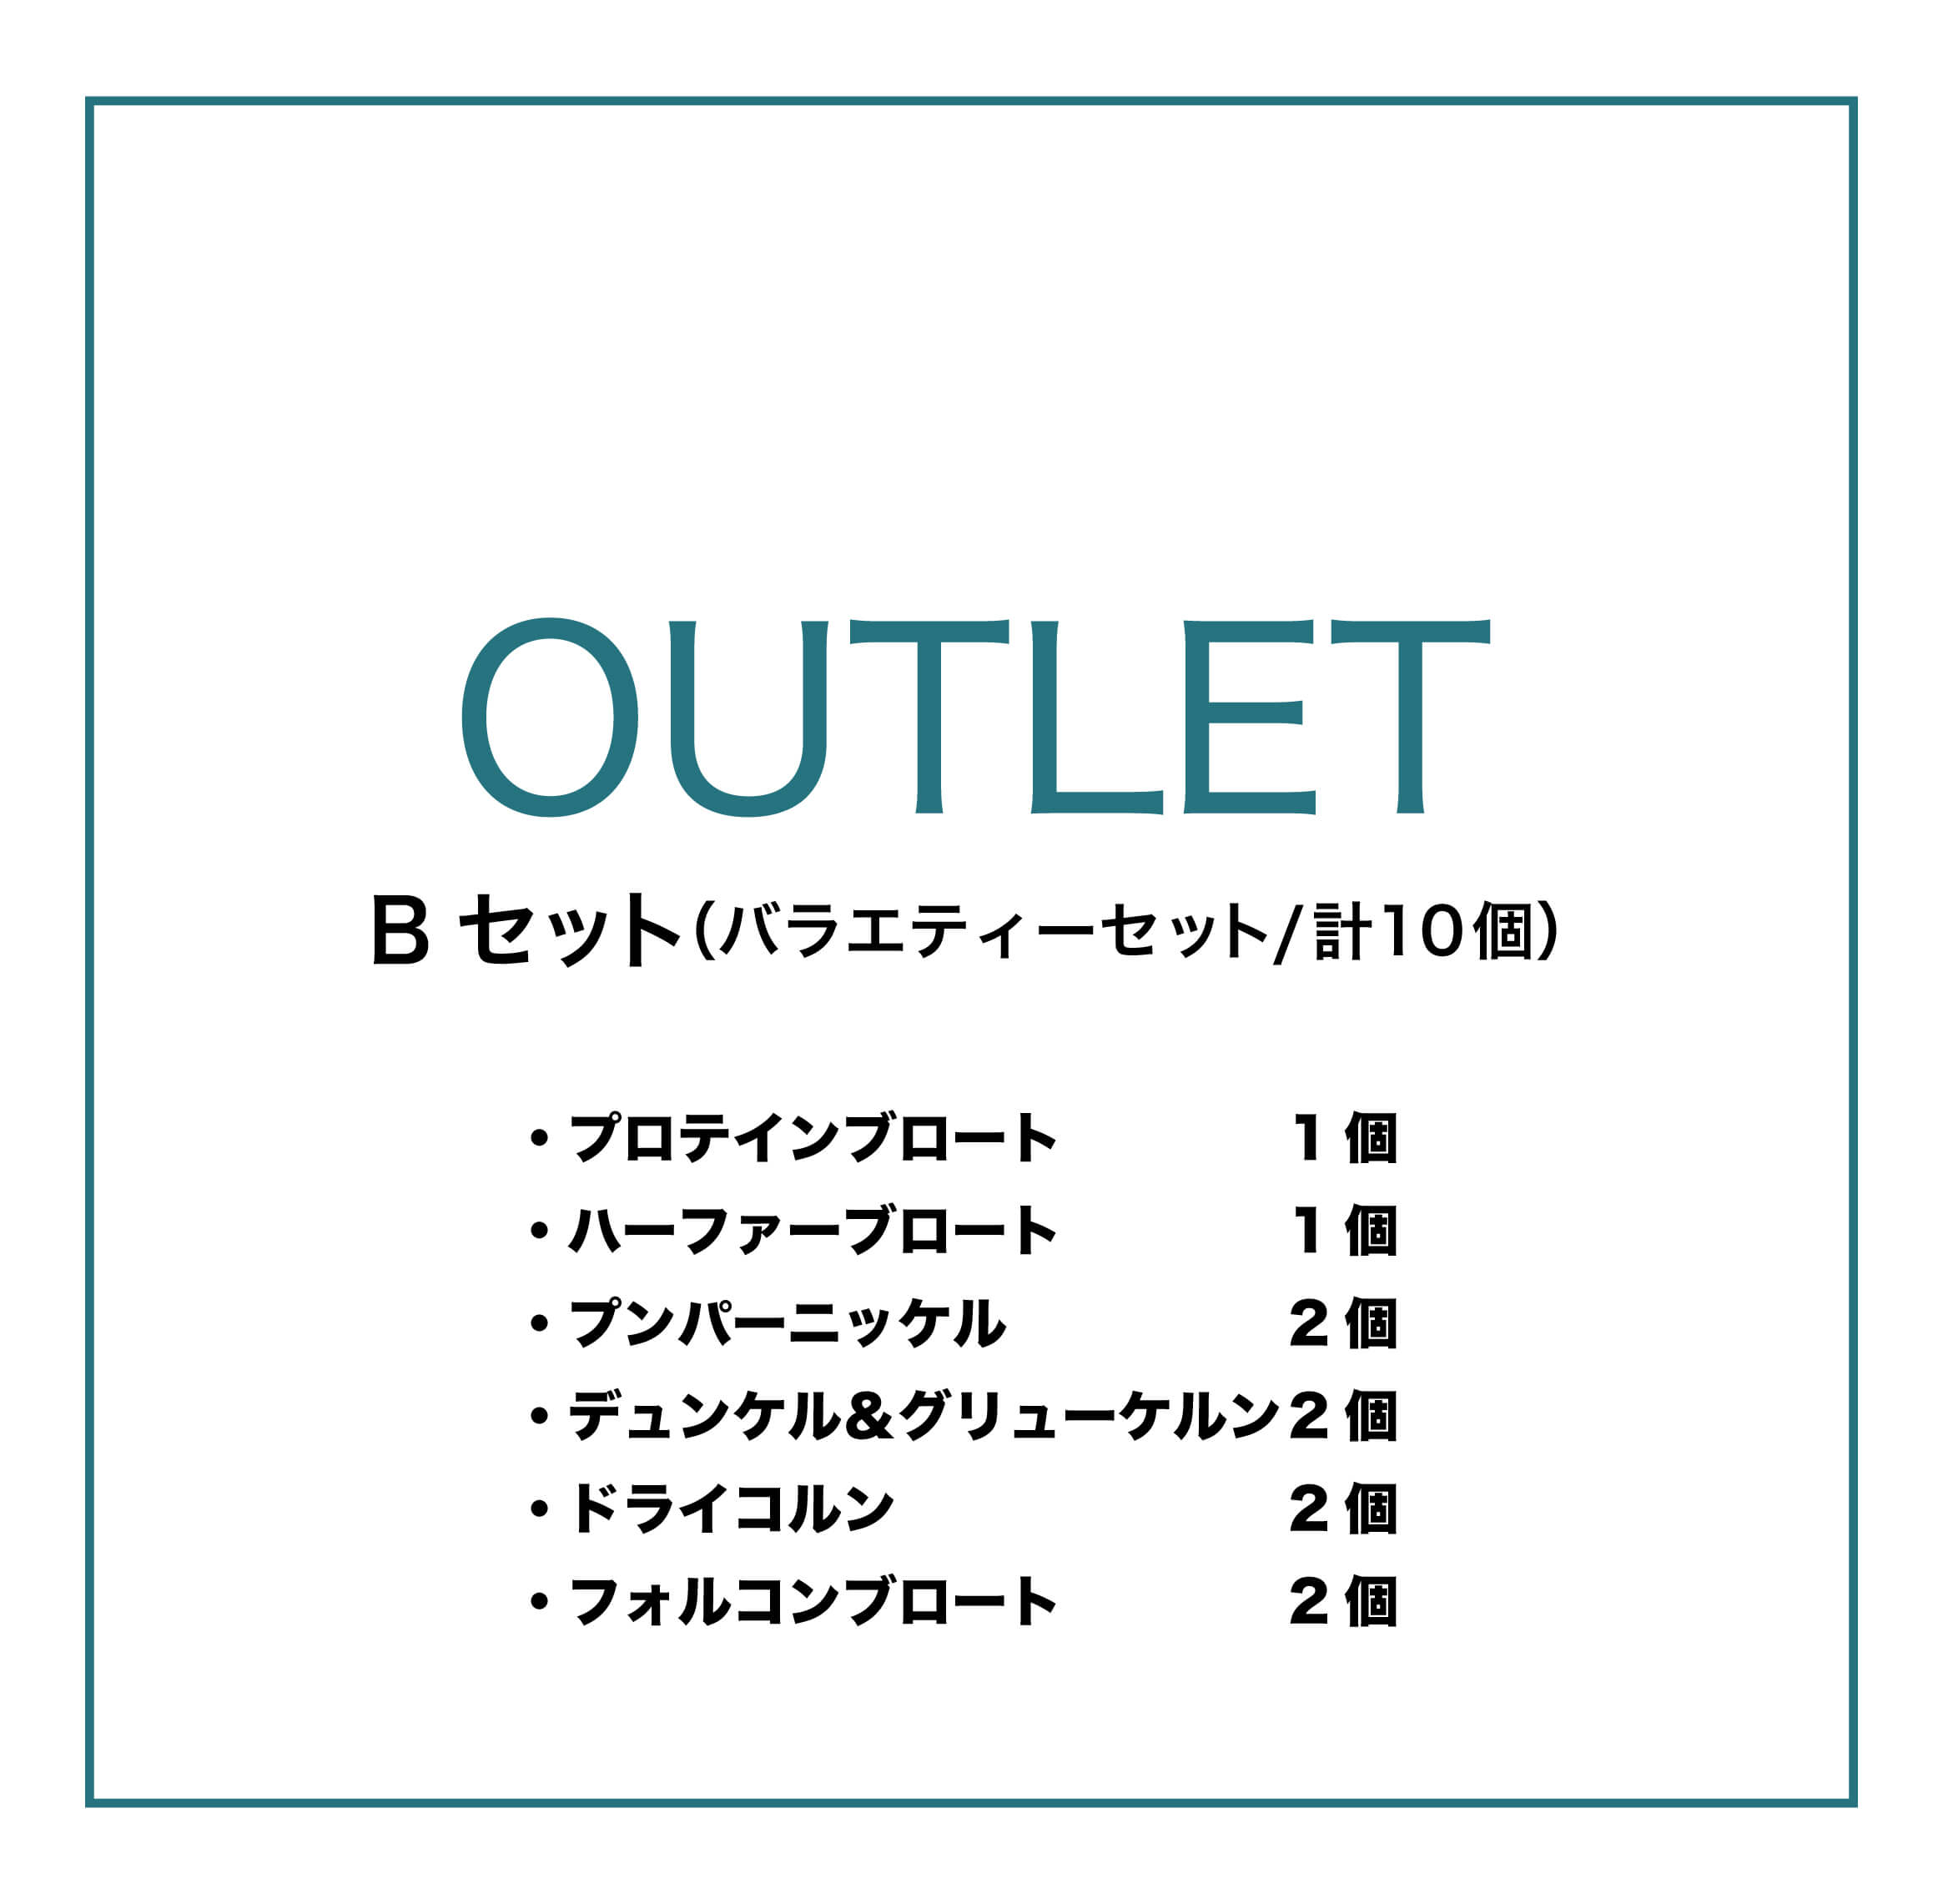 OUTLET_B